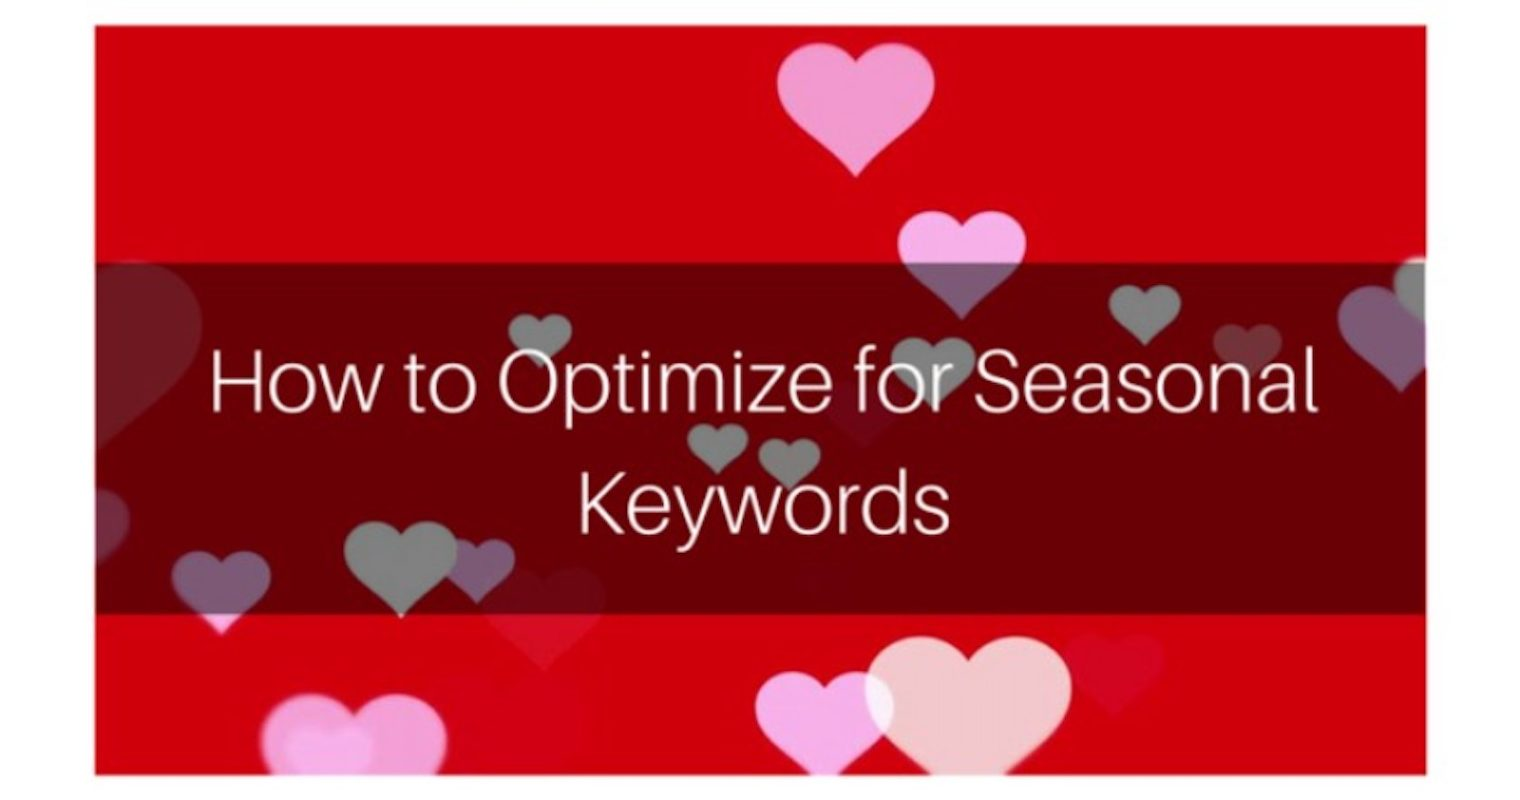 How to Optimize for Seasonal Keywords